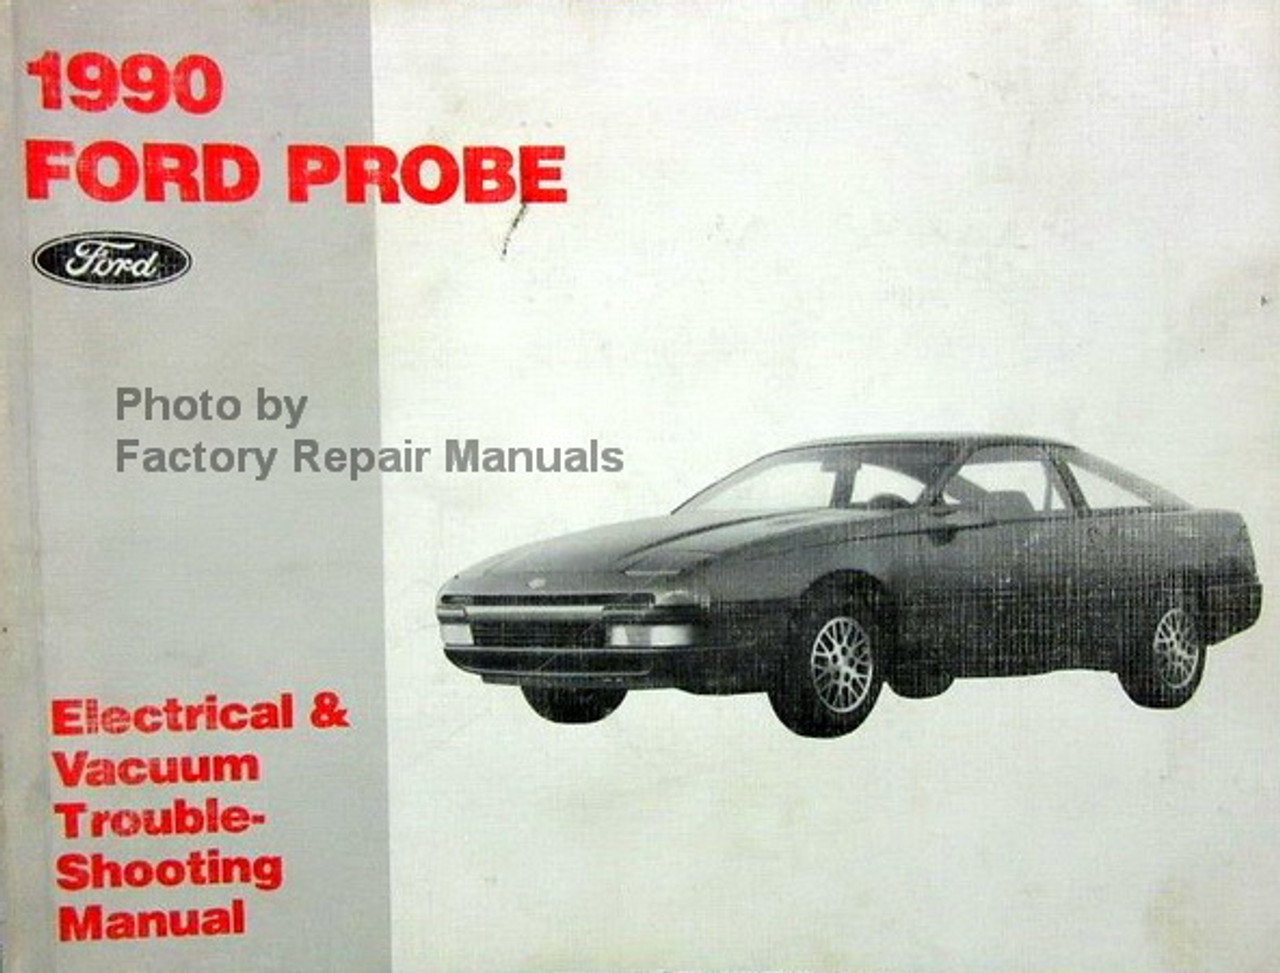 ford probe wiring diagrams 1990 ford probe electrical   vacuum troubleshooting manual wiring  1990 ford probe electrical   vacuum